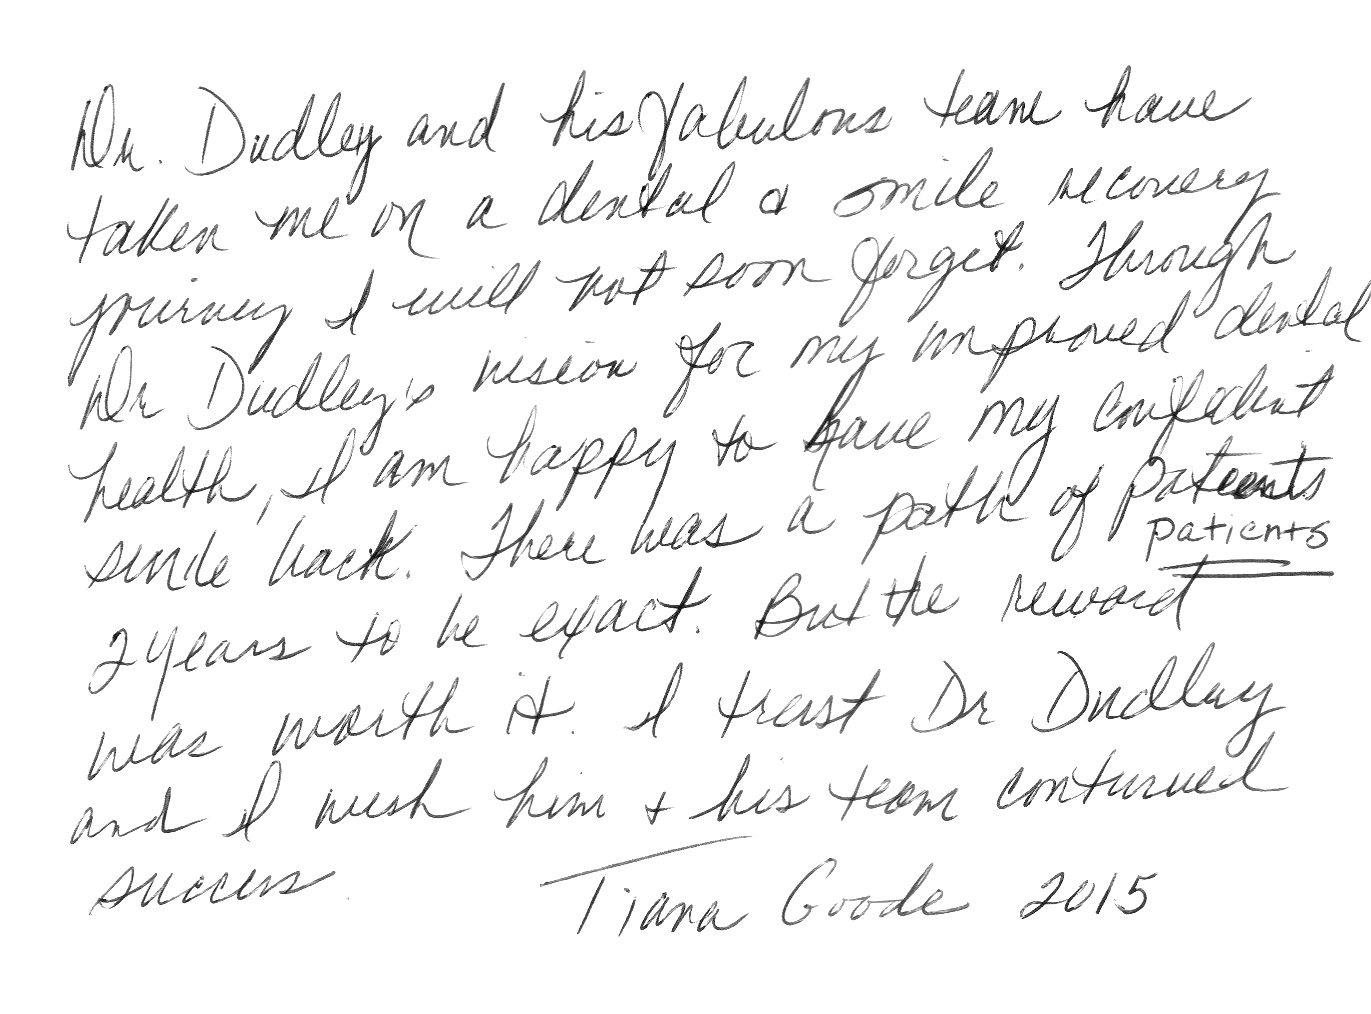 We appreciate the letter, Tiana!